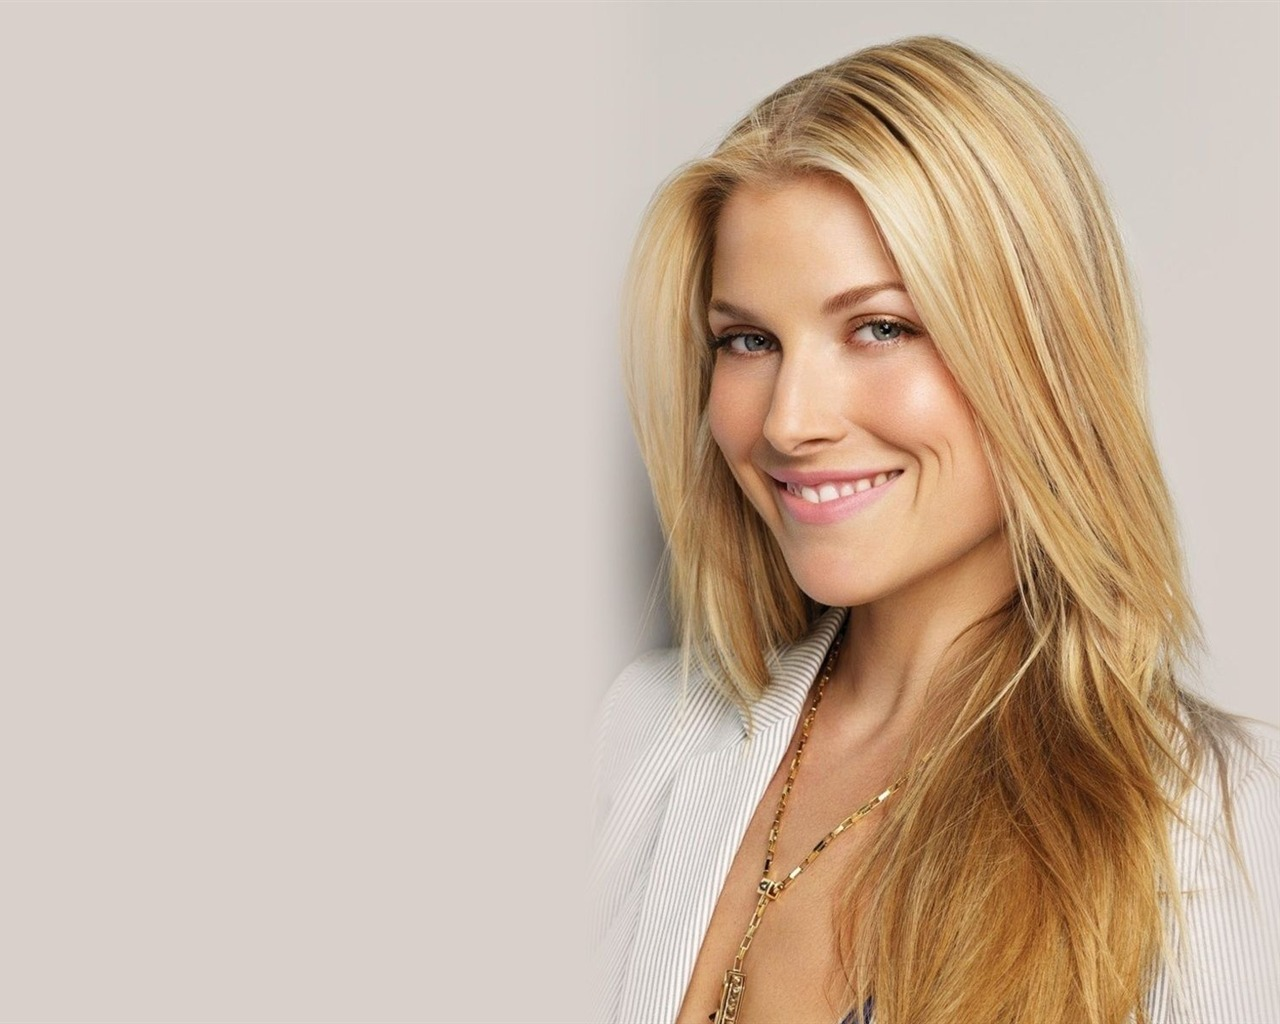 Ali Larter #005 - 1280x1024 Wallpapers Pictures Photos Images